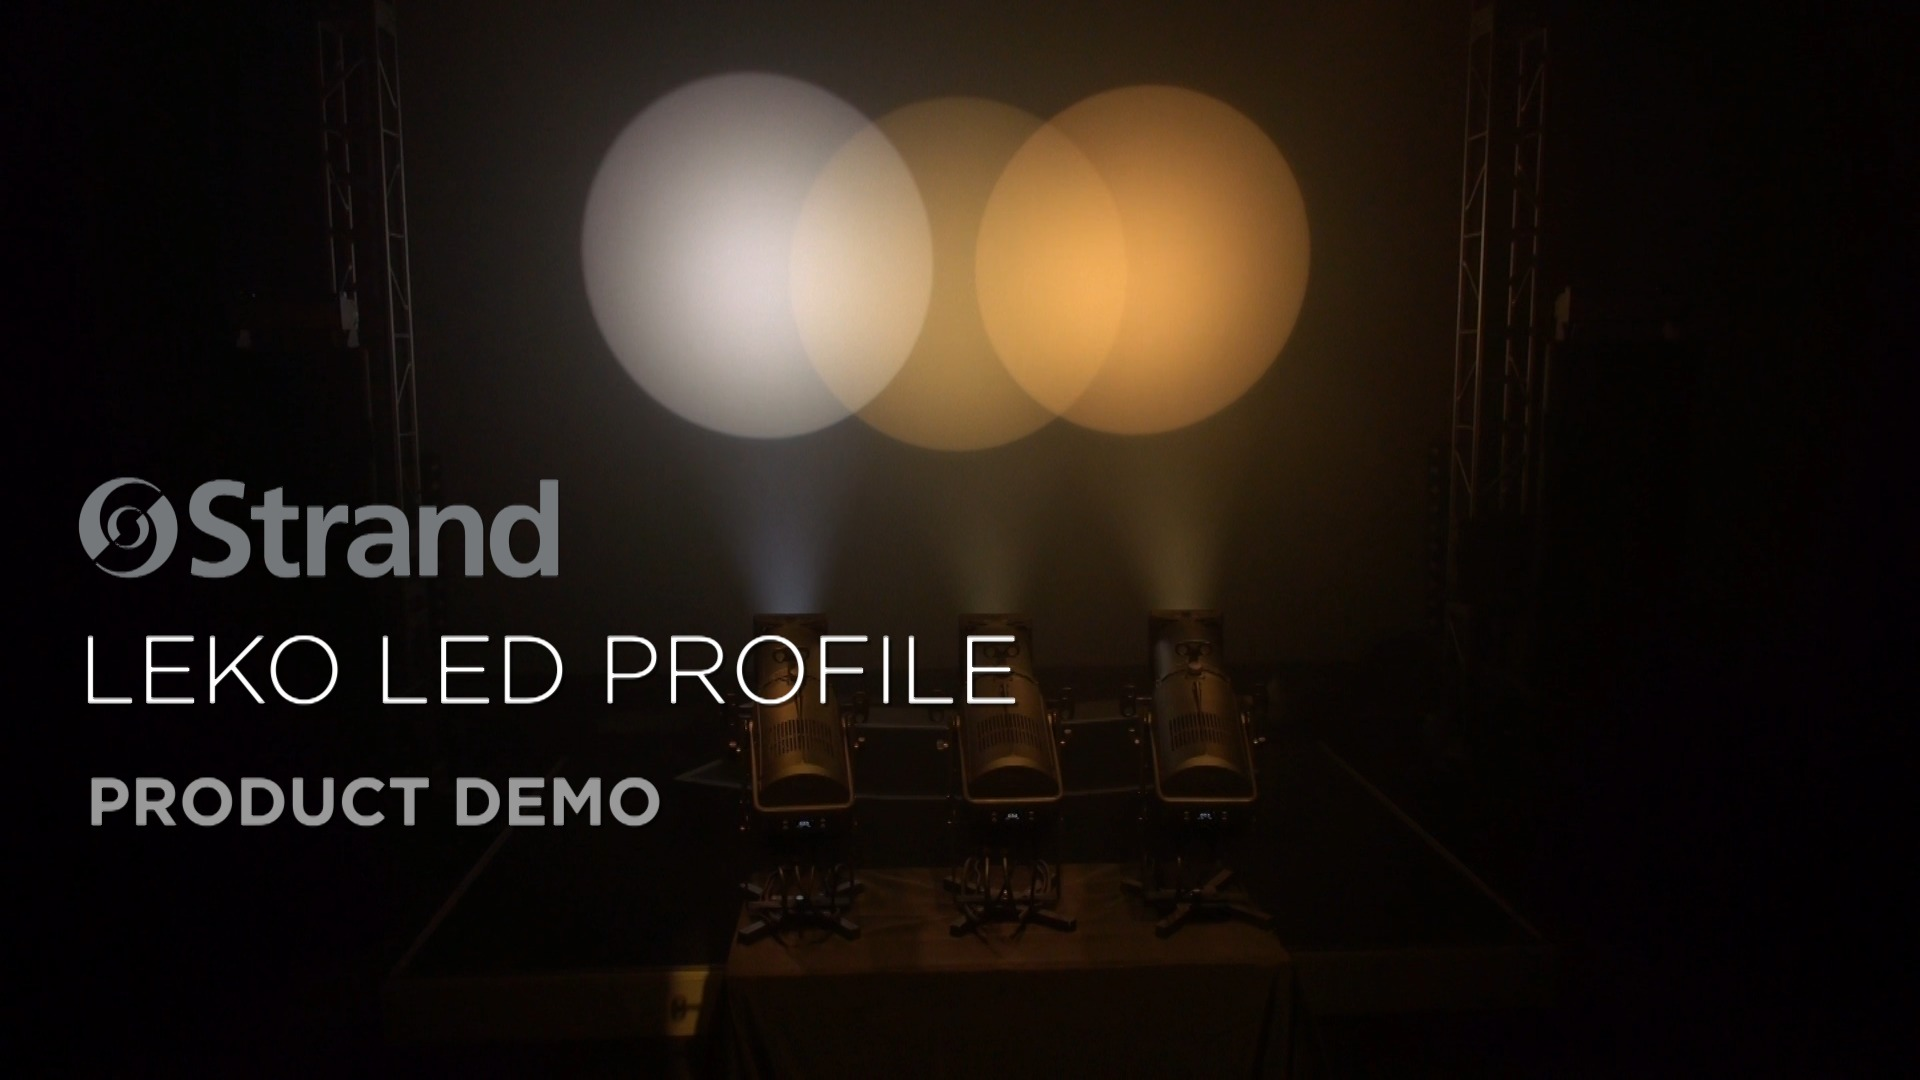 LEKO LED PROFILE Product Demonstration Video